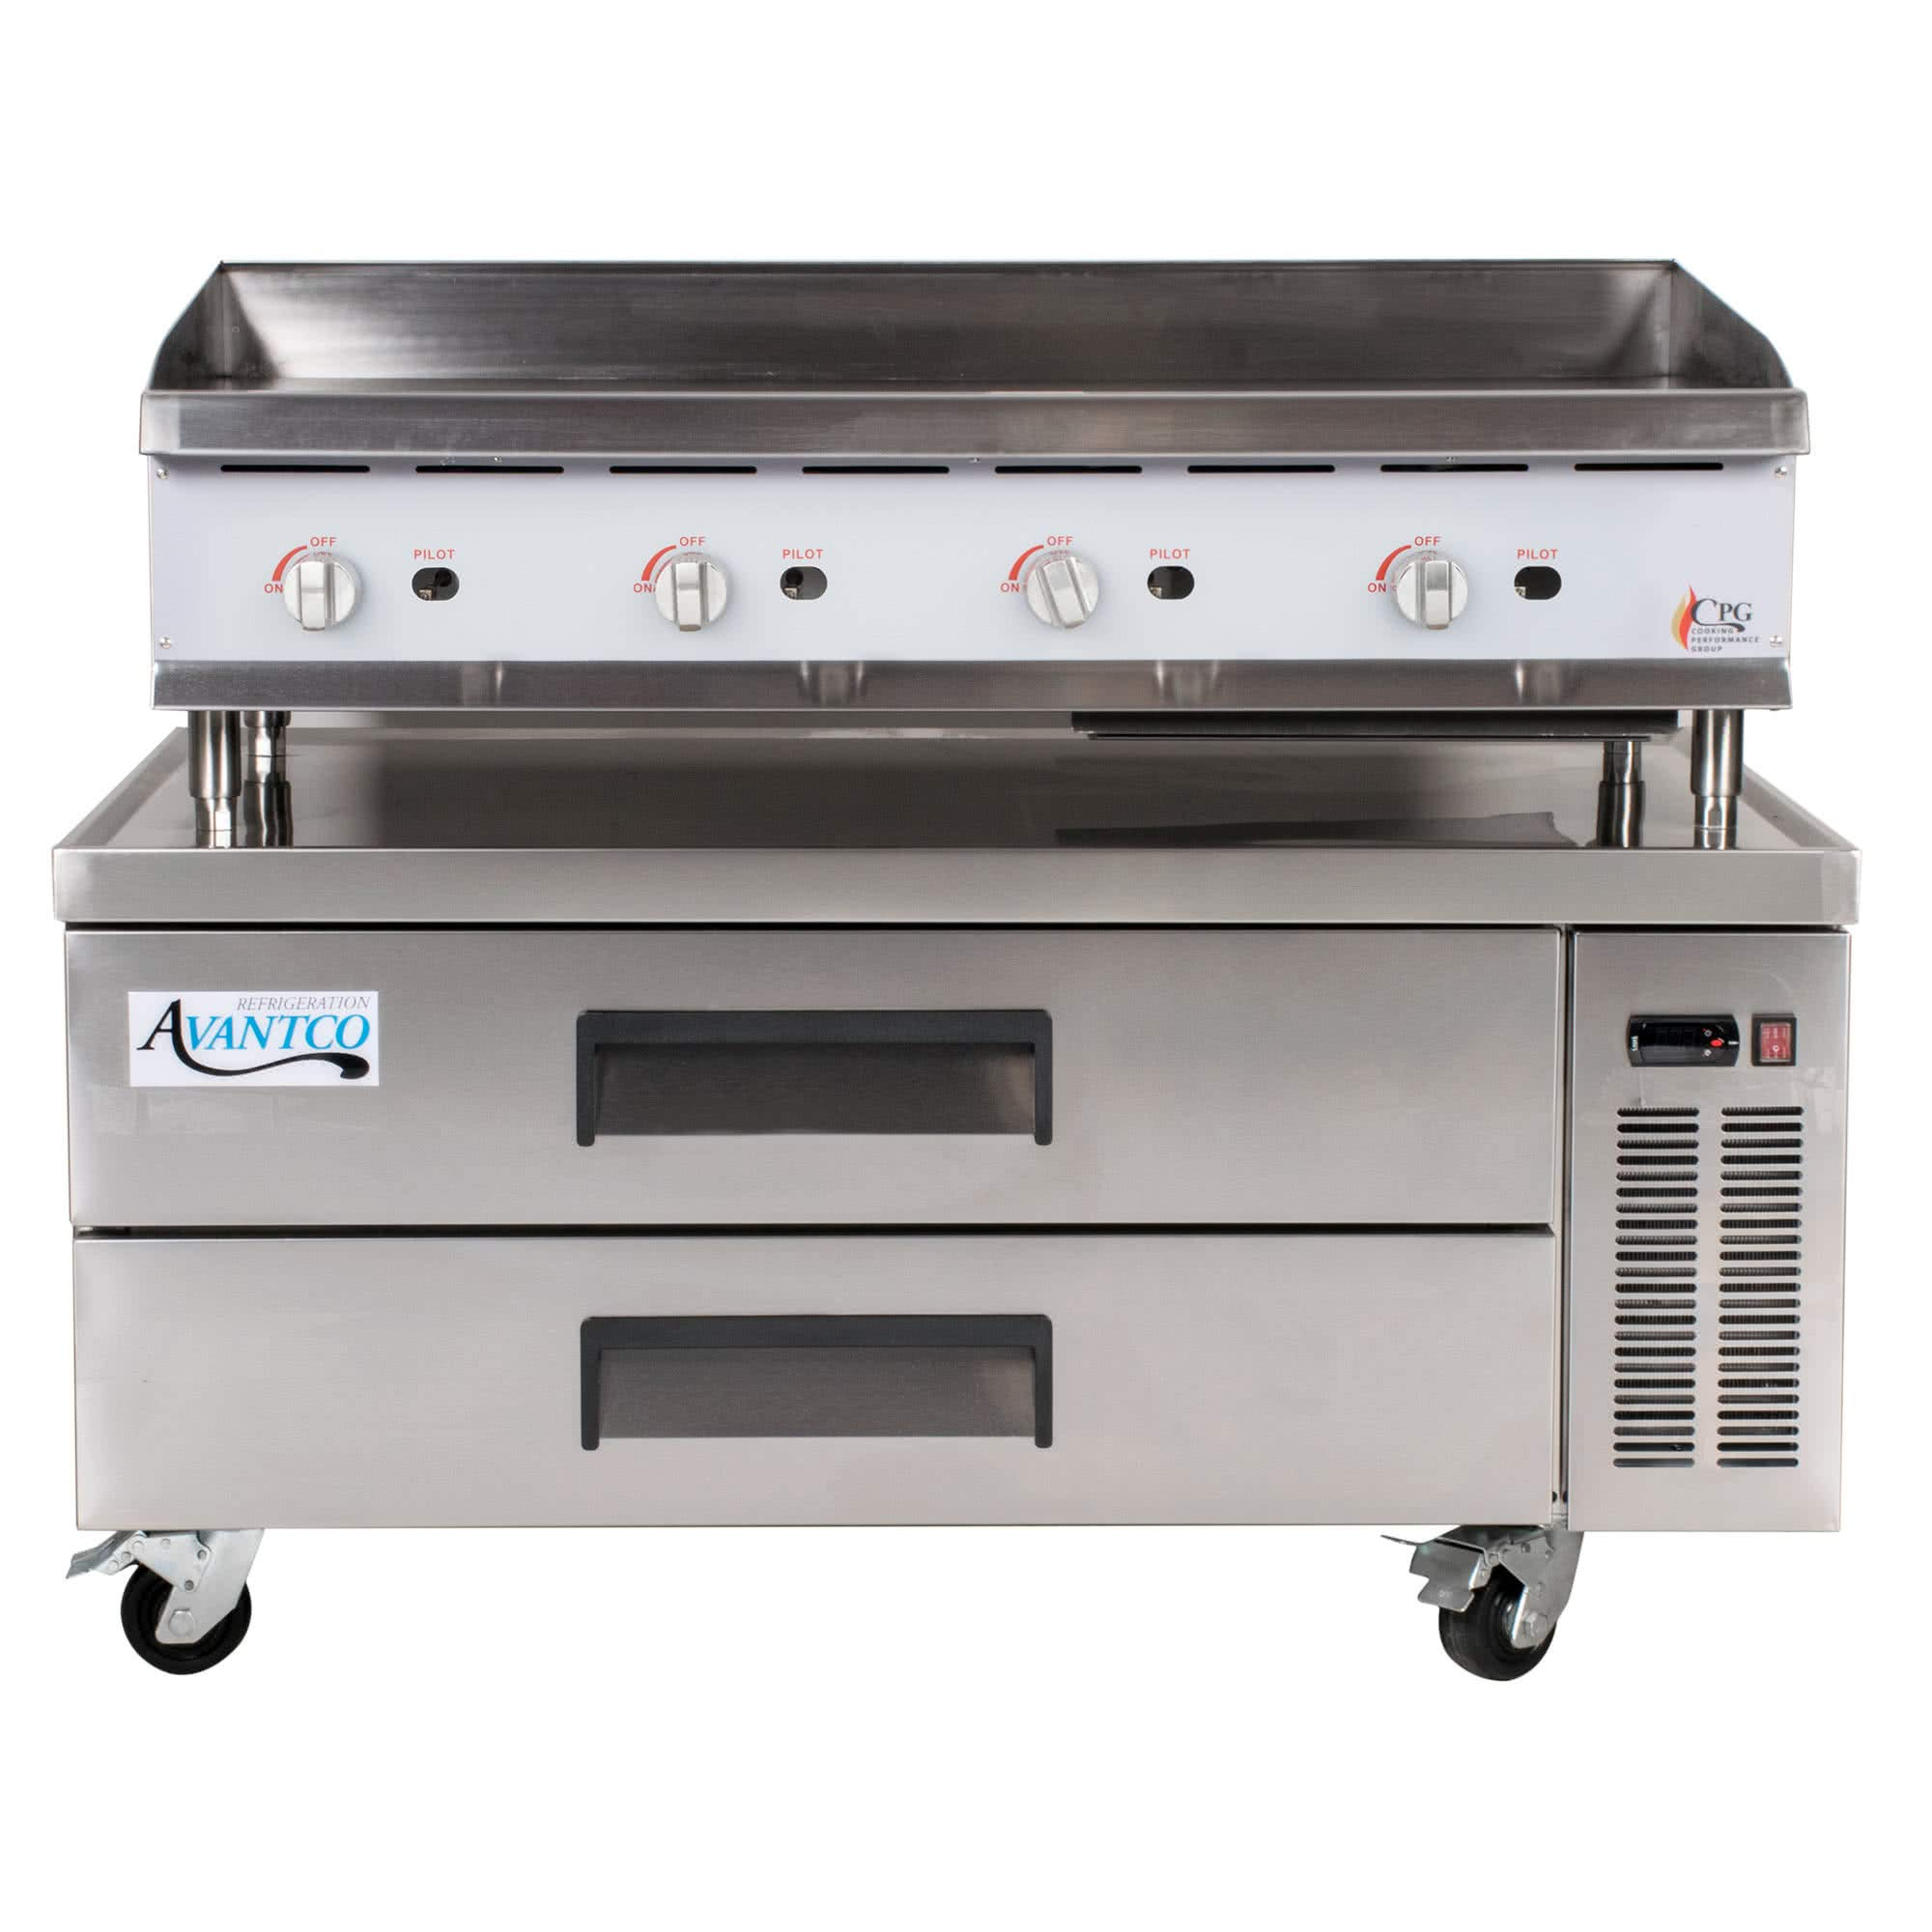 TableTop King 48GMRBNL 48'' Gas Countertop Griddle with Manual Controls and 2 Drawer Refrigerated Chef Base - 120,000 BTU